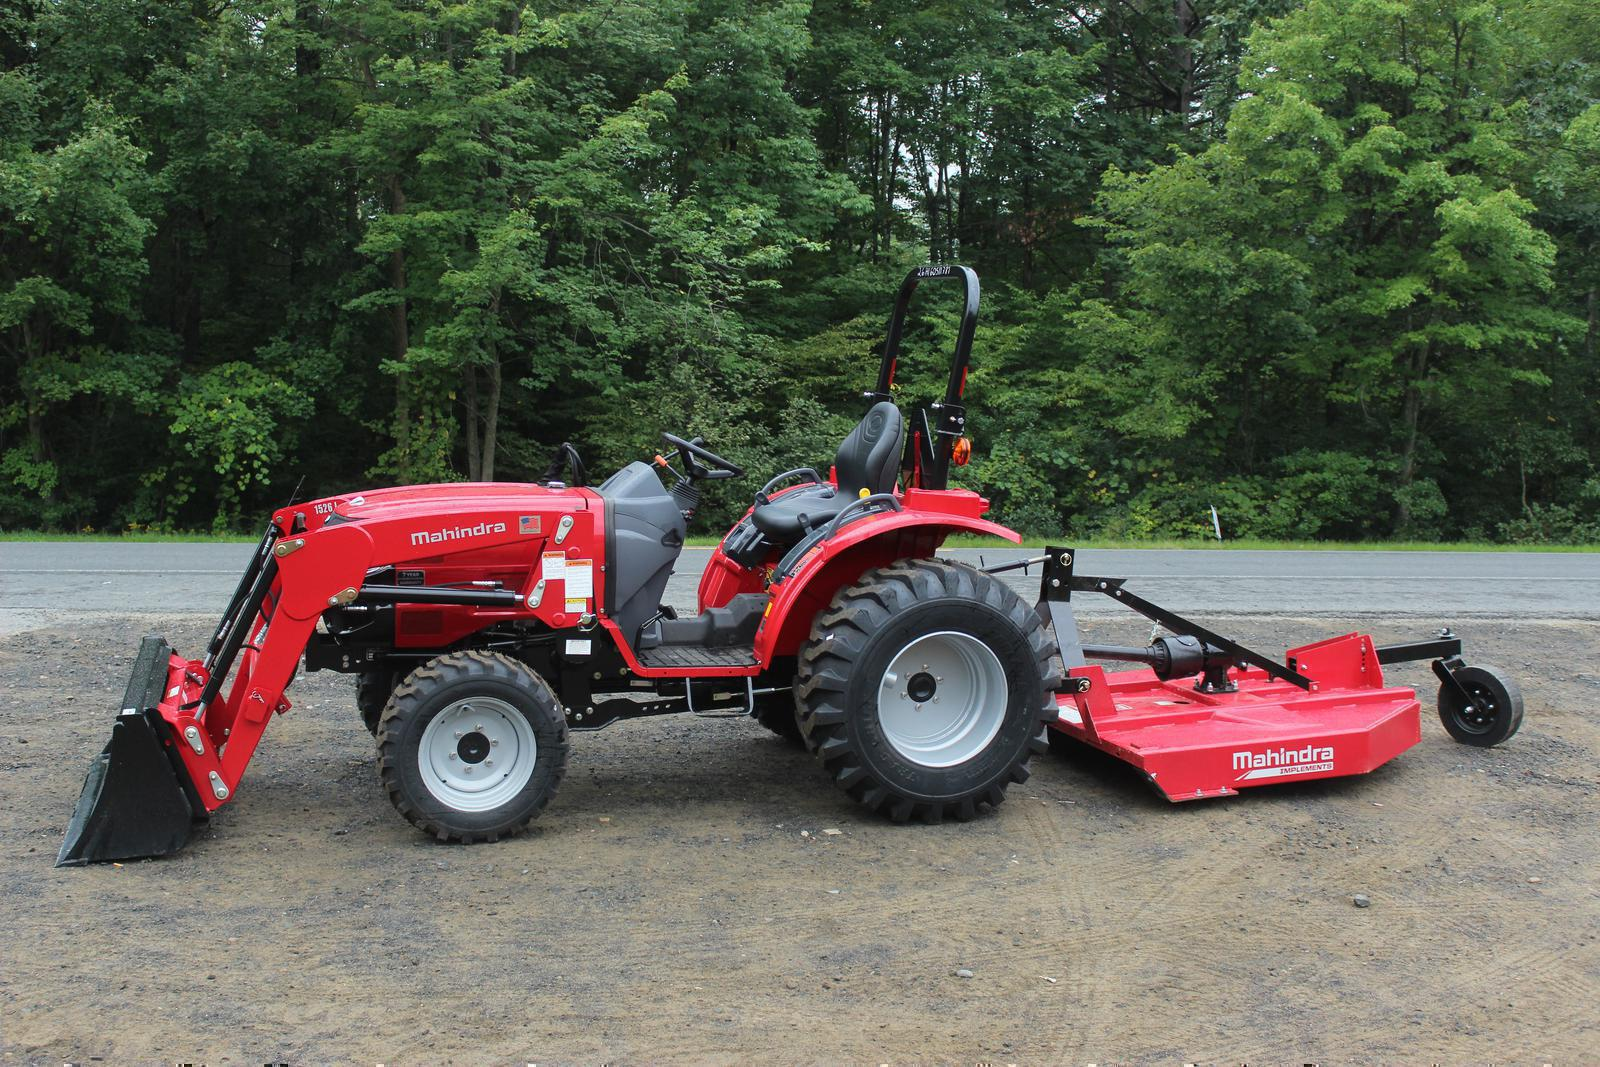 Inventory Orchard Hill Farm Equipment Belchertown, MA (413